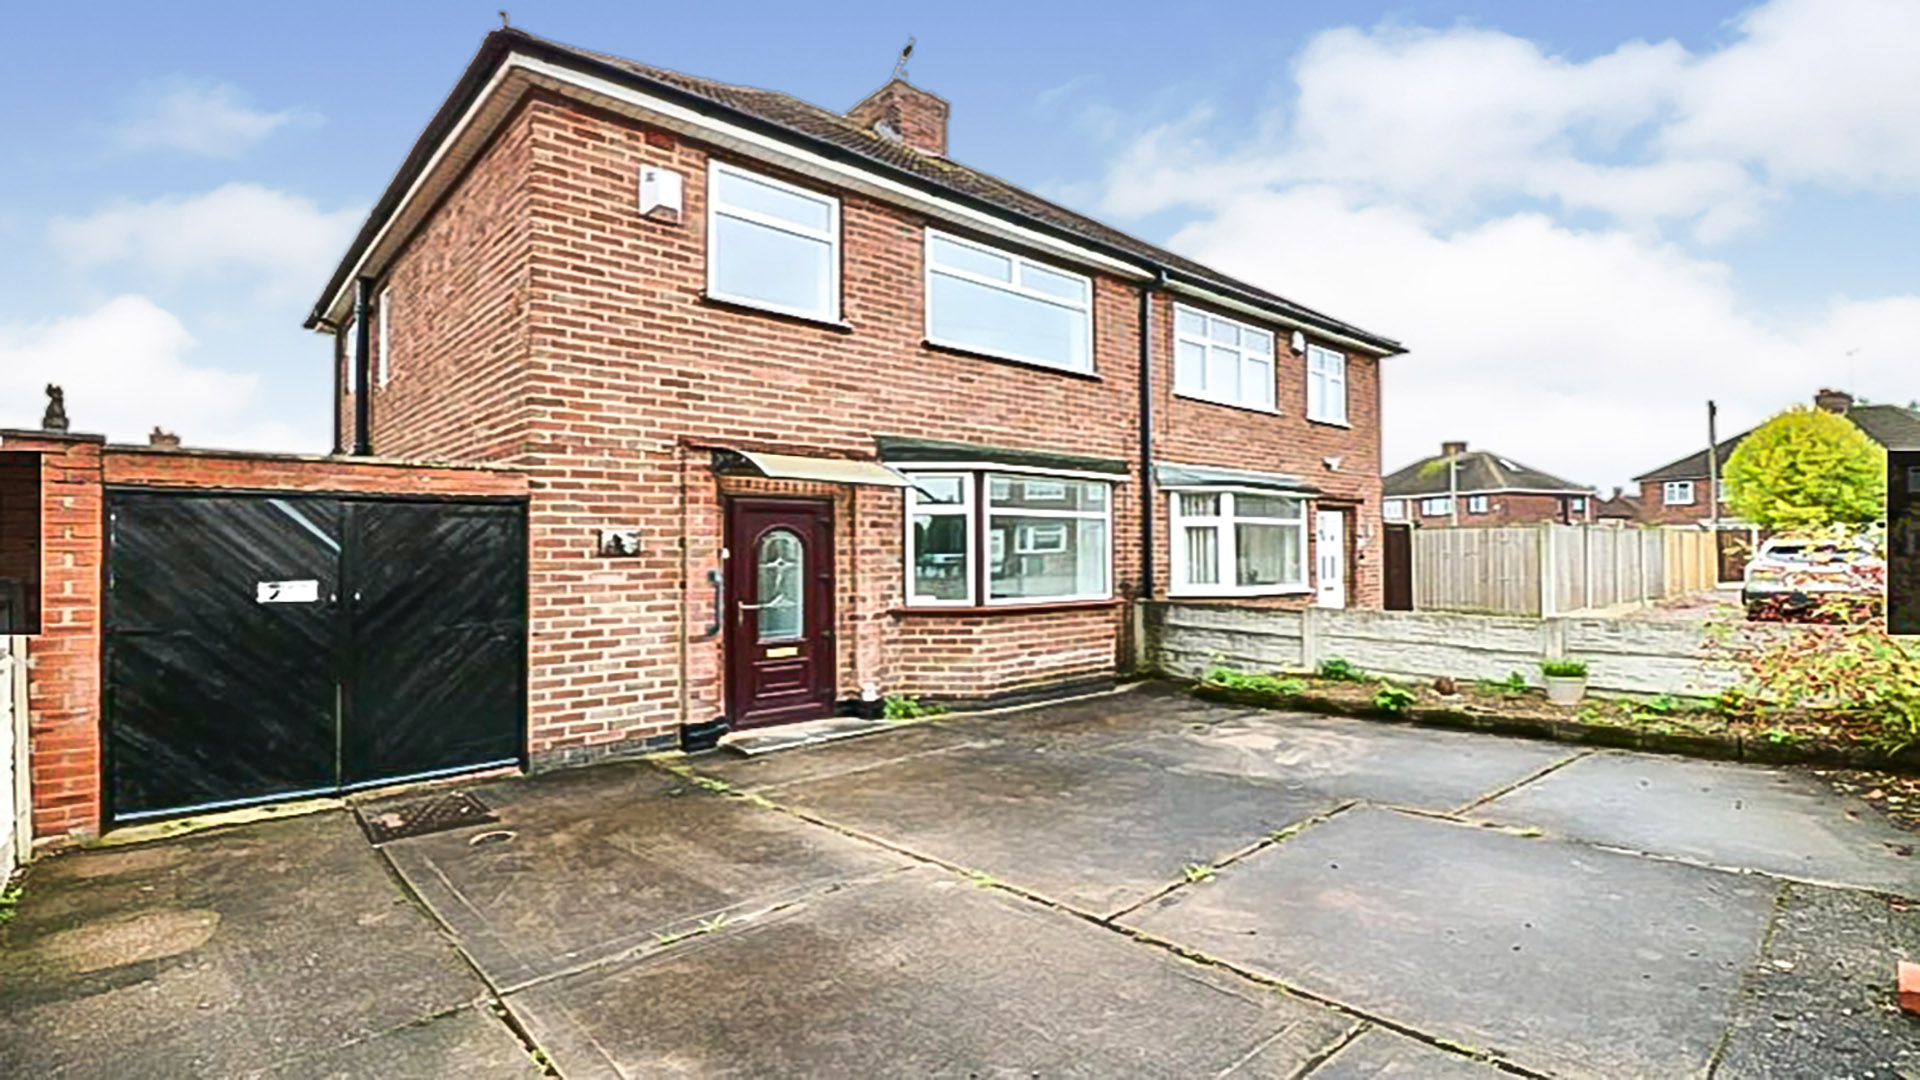 3 Bed Semi-Detached House for Sale in Rowan Drive, Kirkby-In-Ashfield